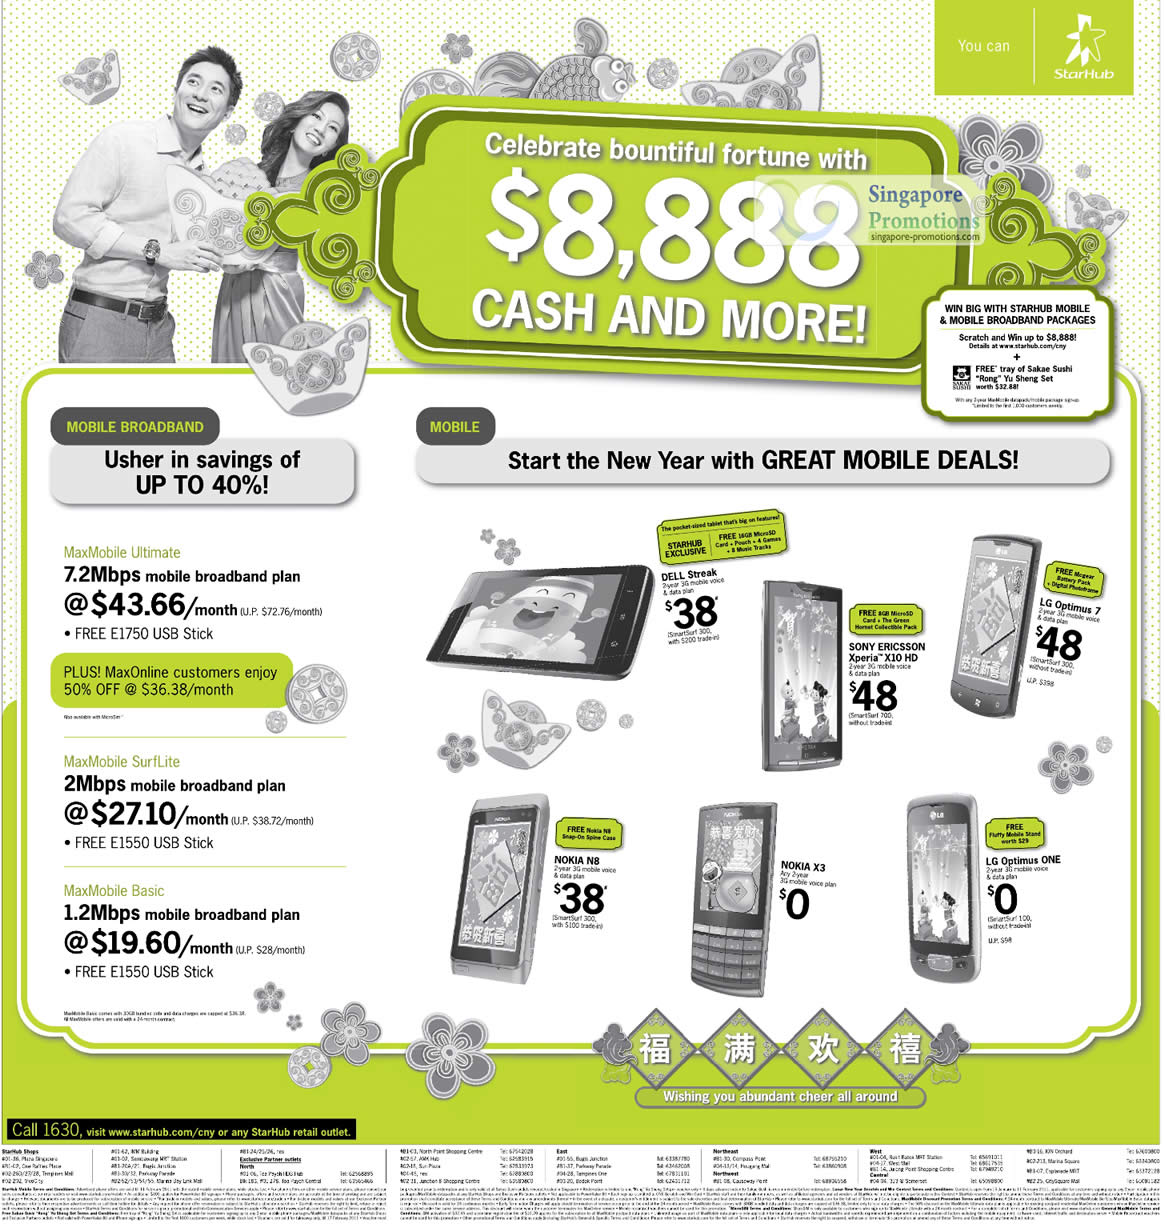 Mobile Broadband, Dell Streak, SE Xperia X10 HD, LG Optimus 7, Nokia N8, X3, LG Optimus One